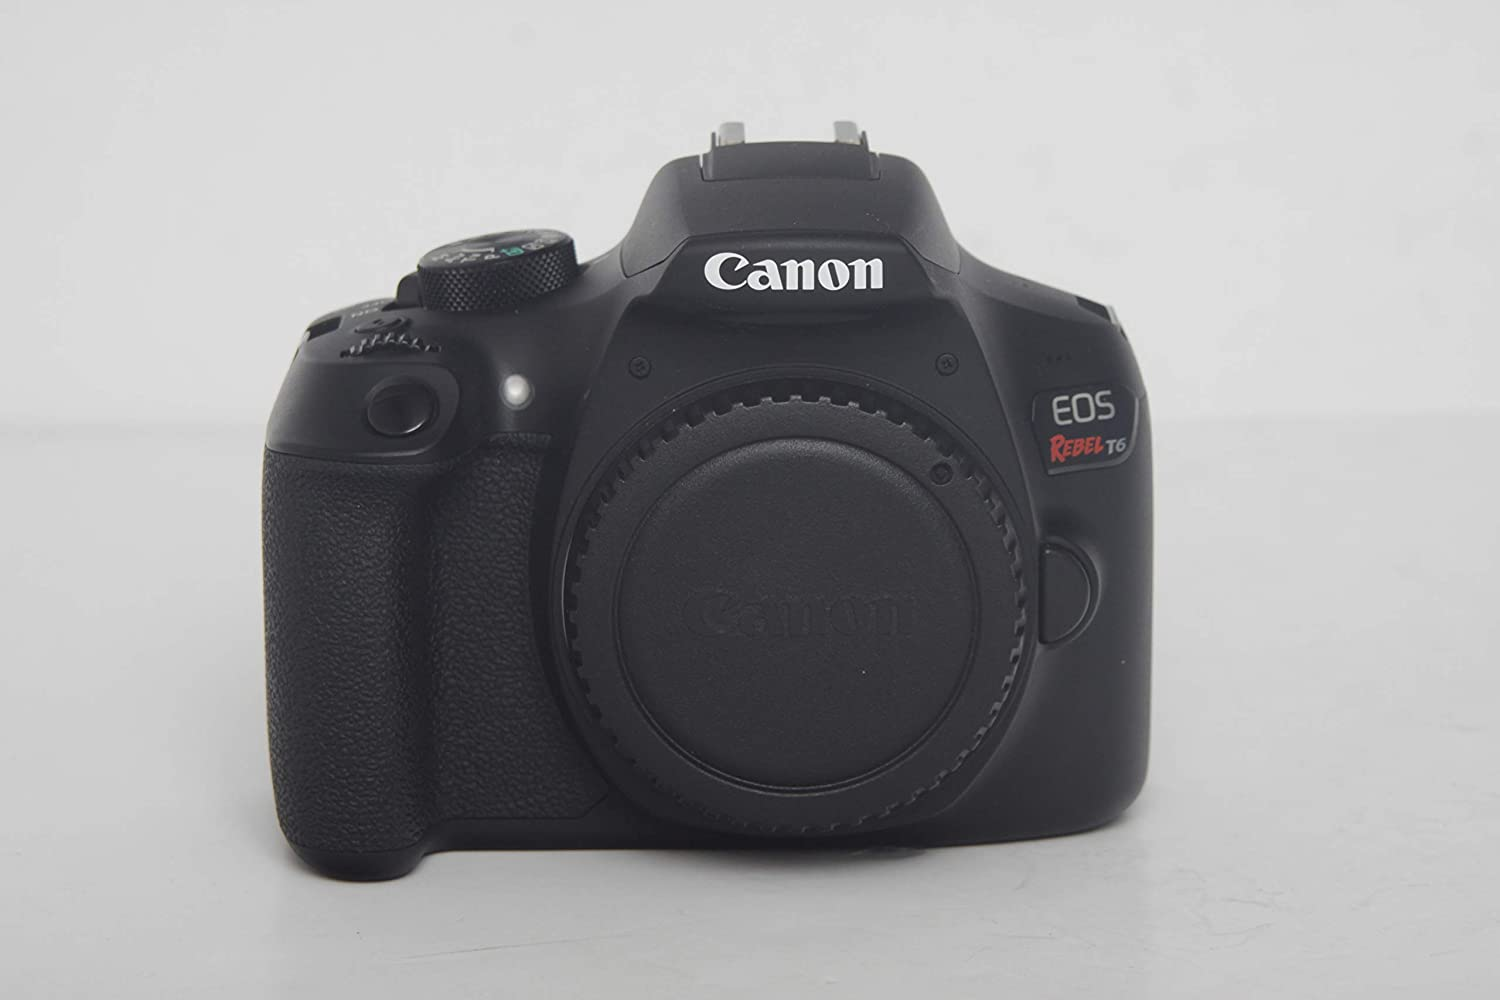 Direct sale of manufacturer Canon Popular product EOS Rebel T6 Digital SLR Only Enabled Camera Wi-Fi Body